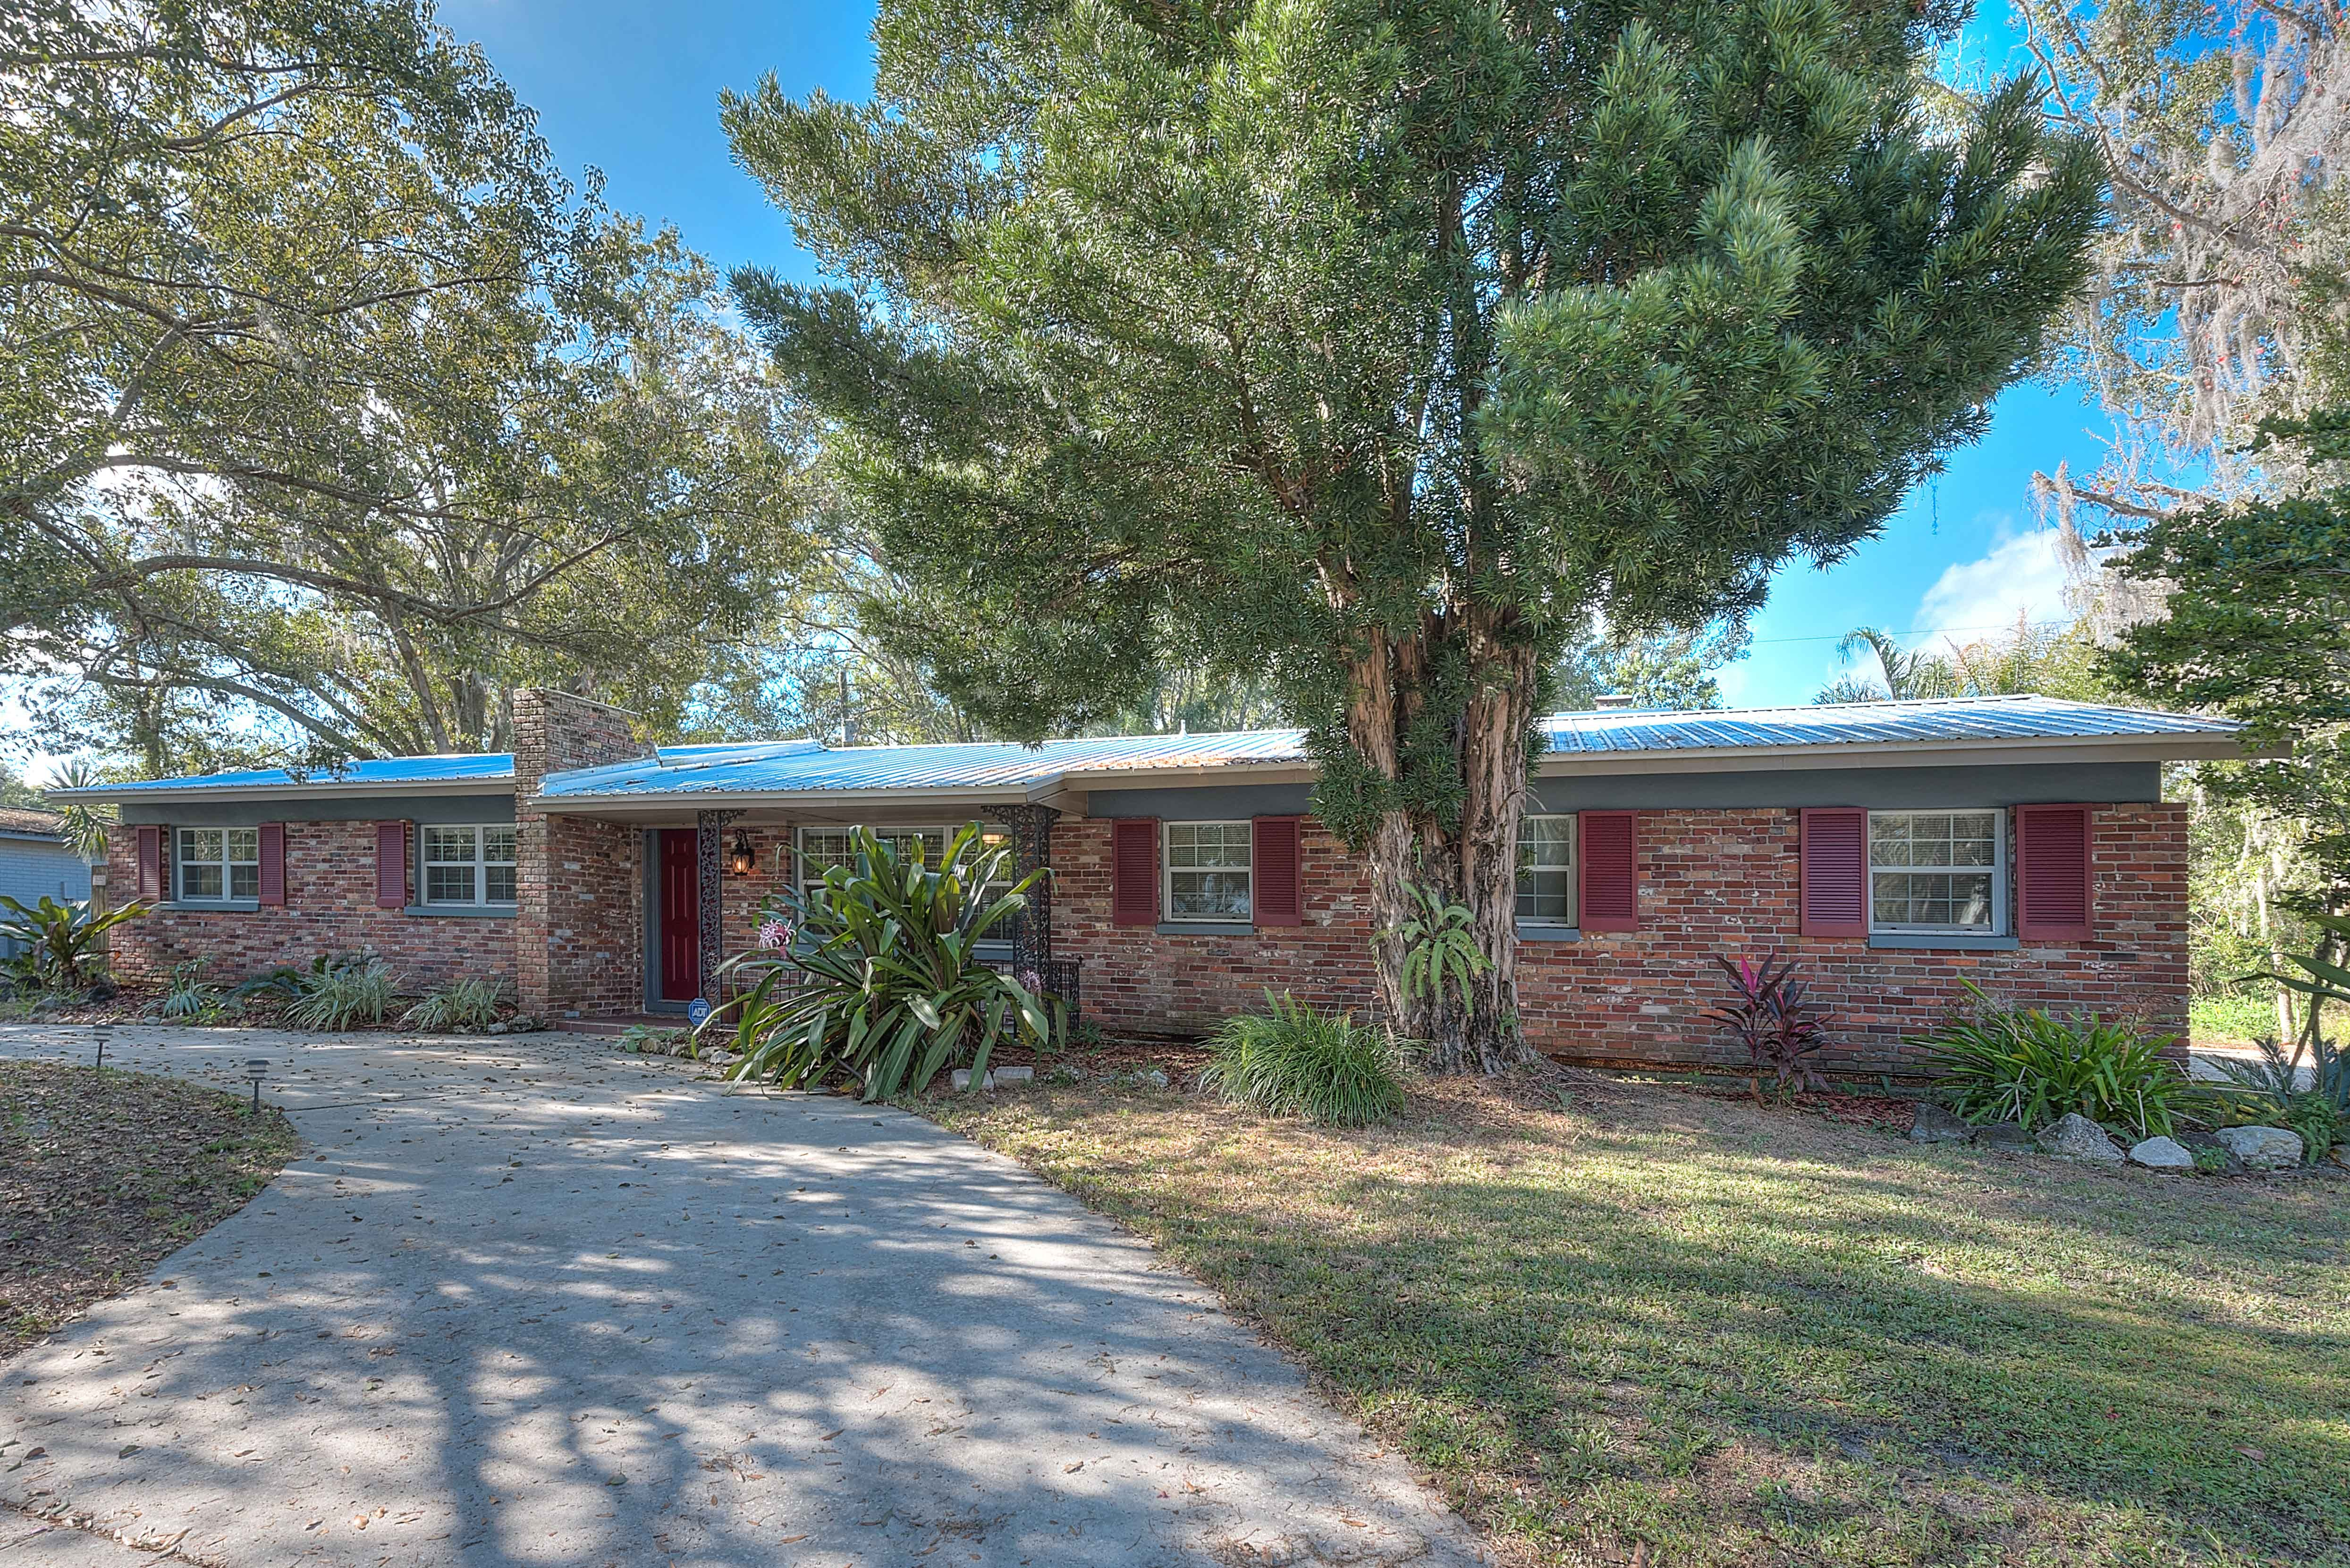 NEW PRICE ALERT! 19210 Sunlake Blvd, Lutz, FL Charming